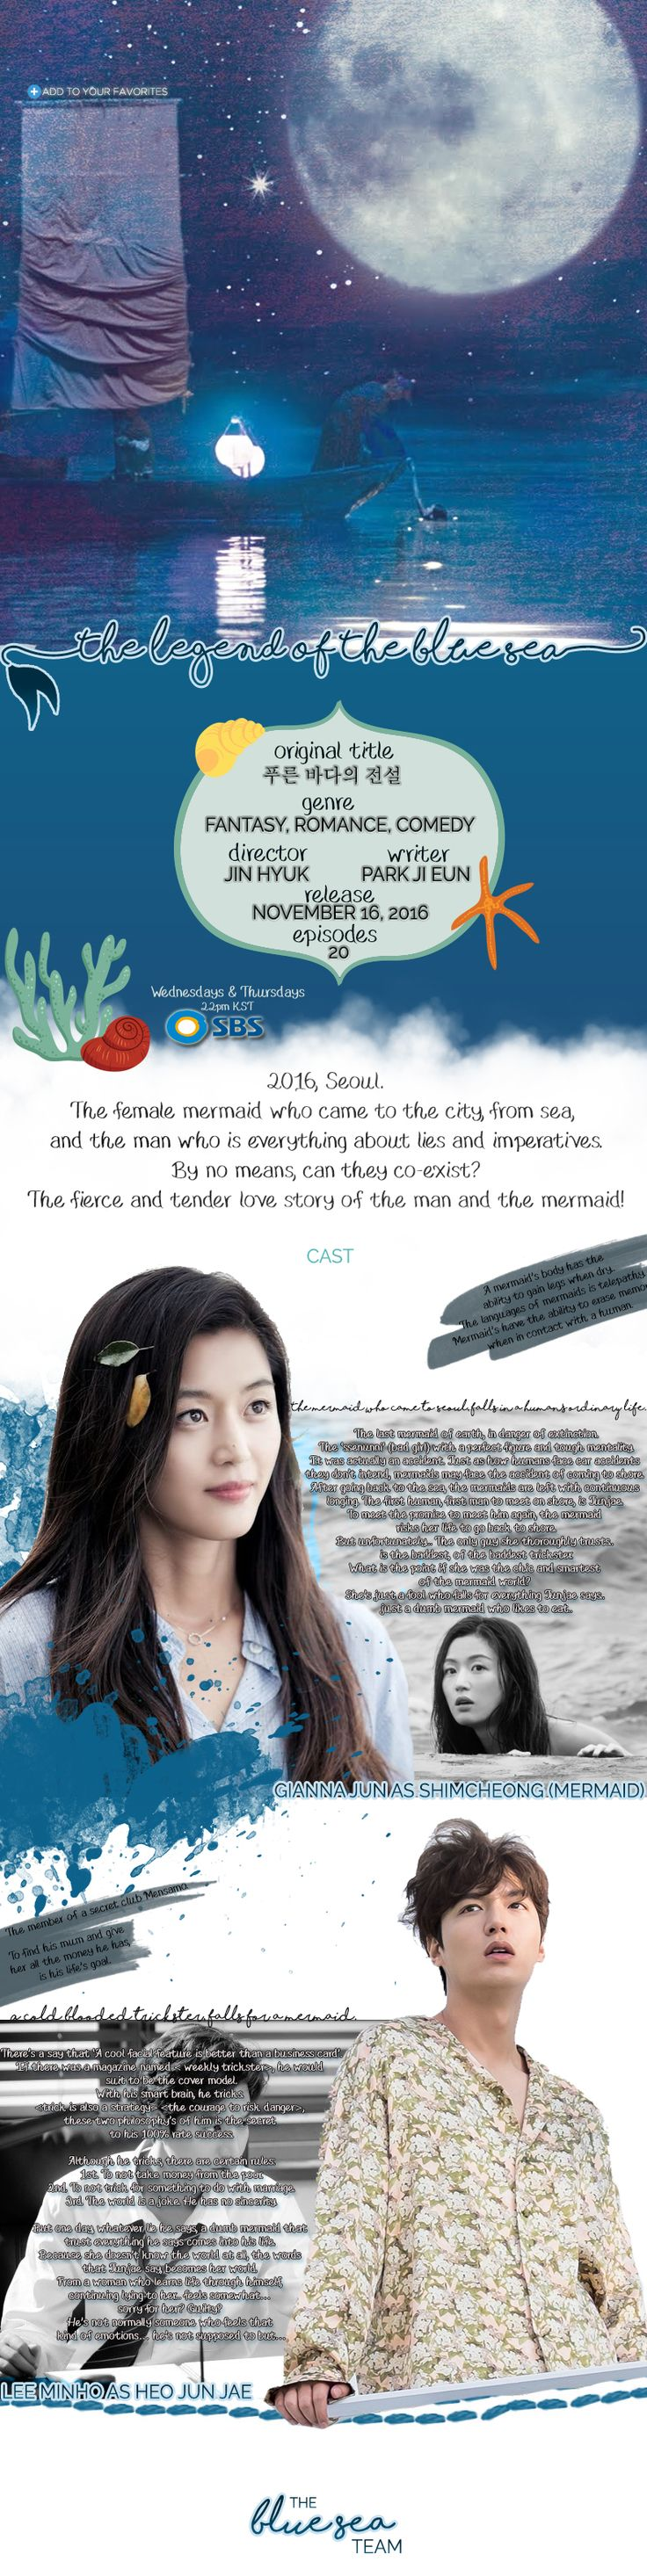 "How can a mermaid from the Joseon era survive in modern-day Seoul? Shim Chung (Jun Ji Hyun) is a mermaid who finds herself transplanted to modern times. She is ""caught"" by Heo Joon Jae (Lee Min Ho), a charming but cold con artist who is the doppelgänger for Kim Moon, the son of a nobleman she met during the Joseon Dynasty. But in the present time, Joon Jae works with Jo Nam Doo (Lee Hee Joon) and Tae Oh (Shin Won Ho) as part of a group of highly skilled scam artists. But Joon Jae's friend…"